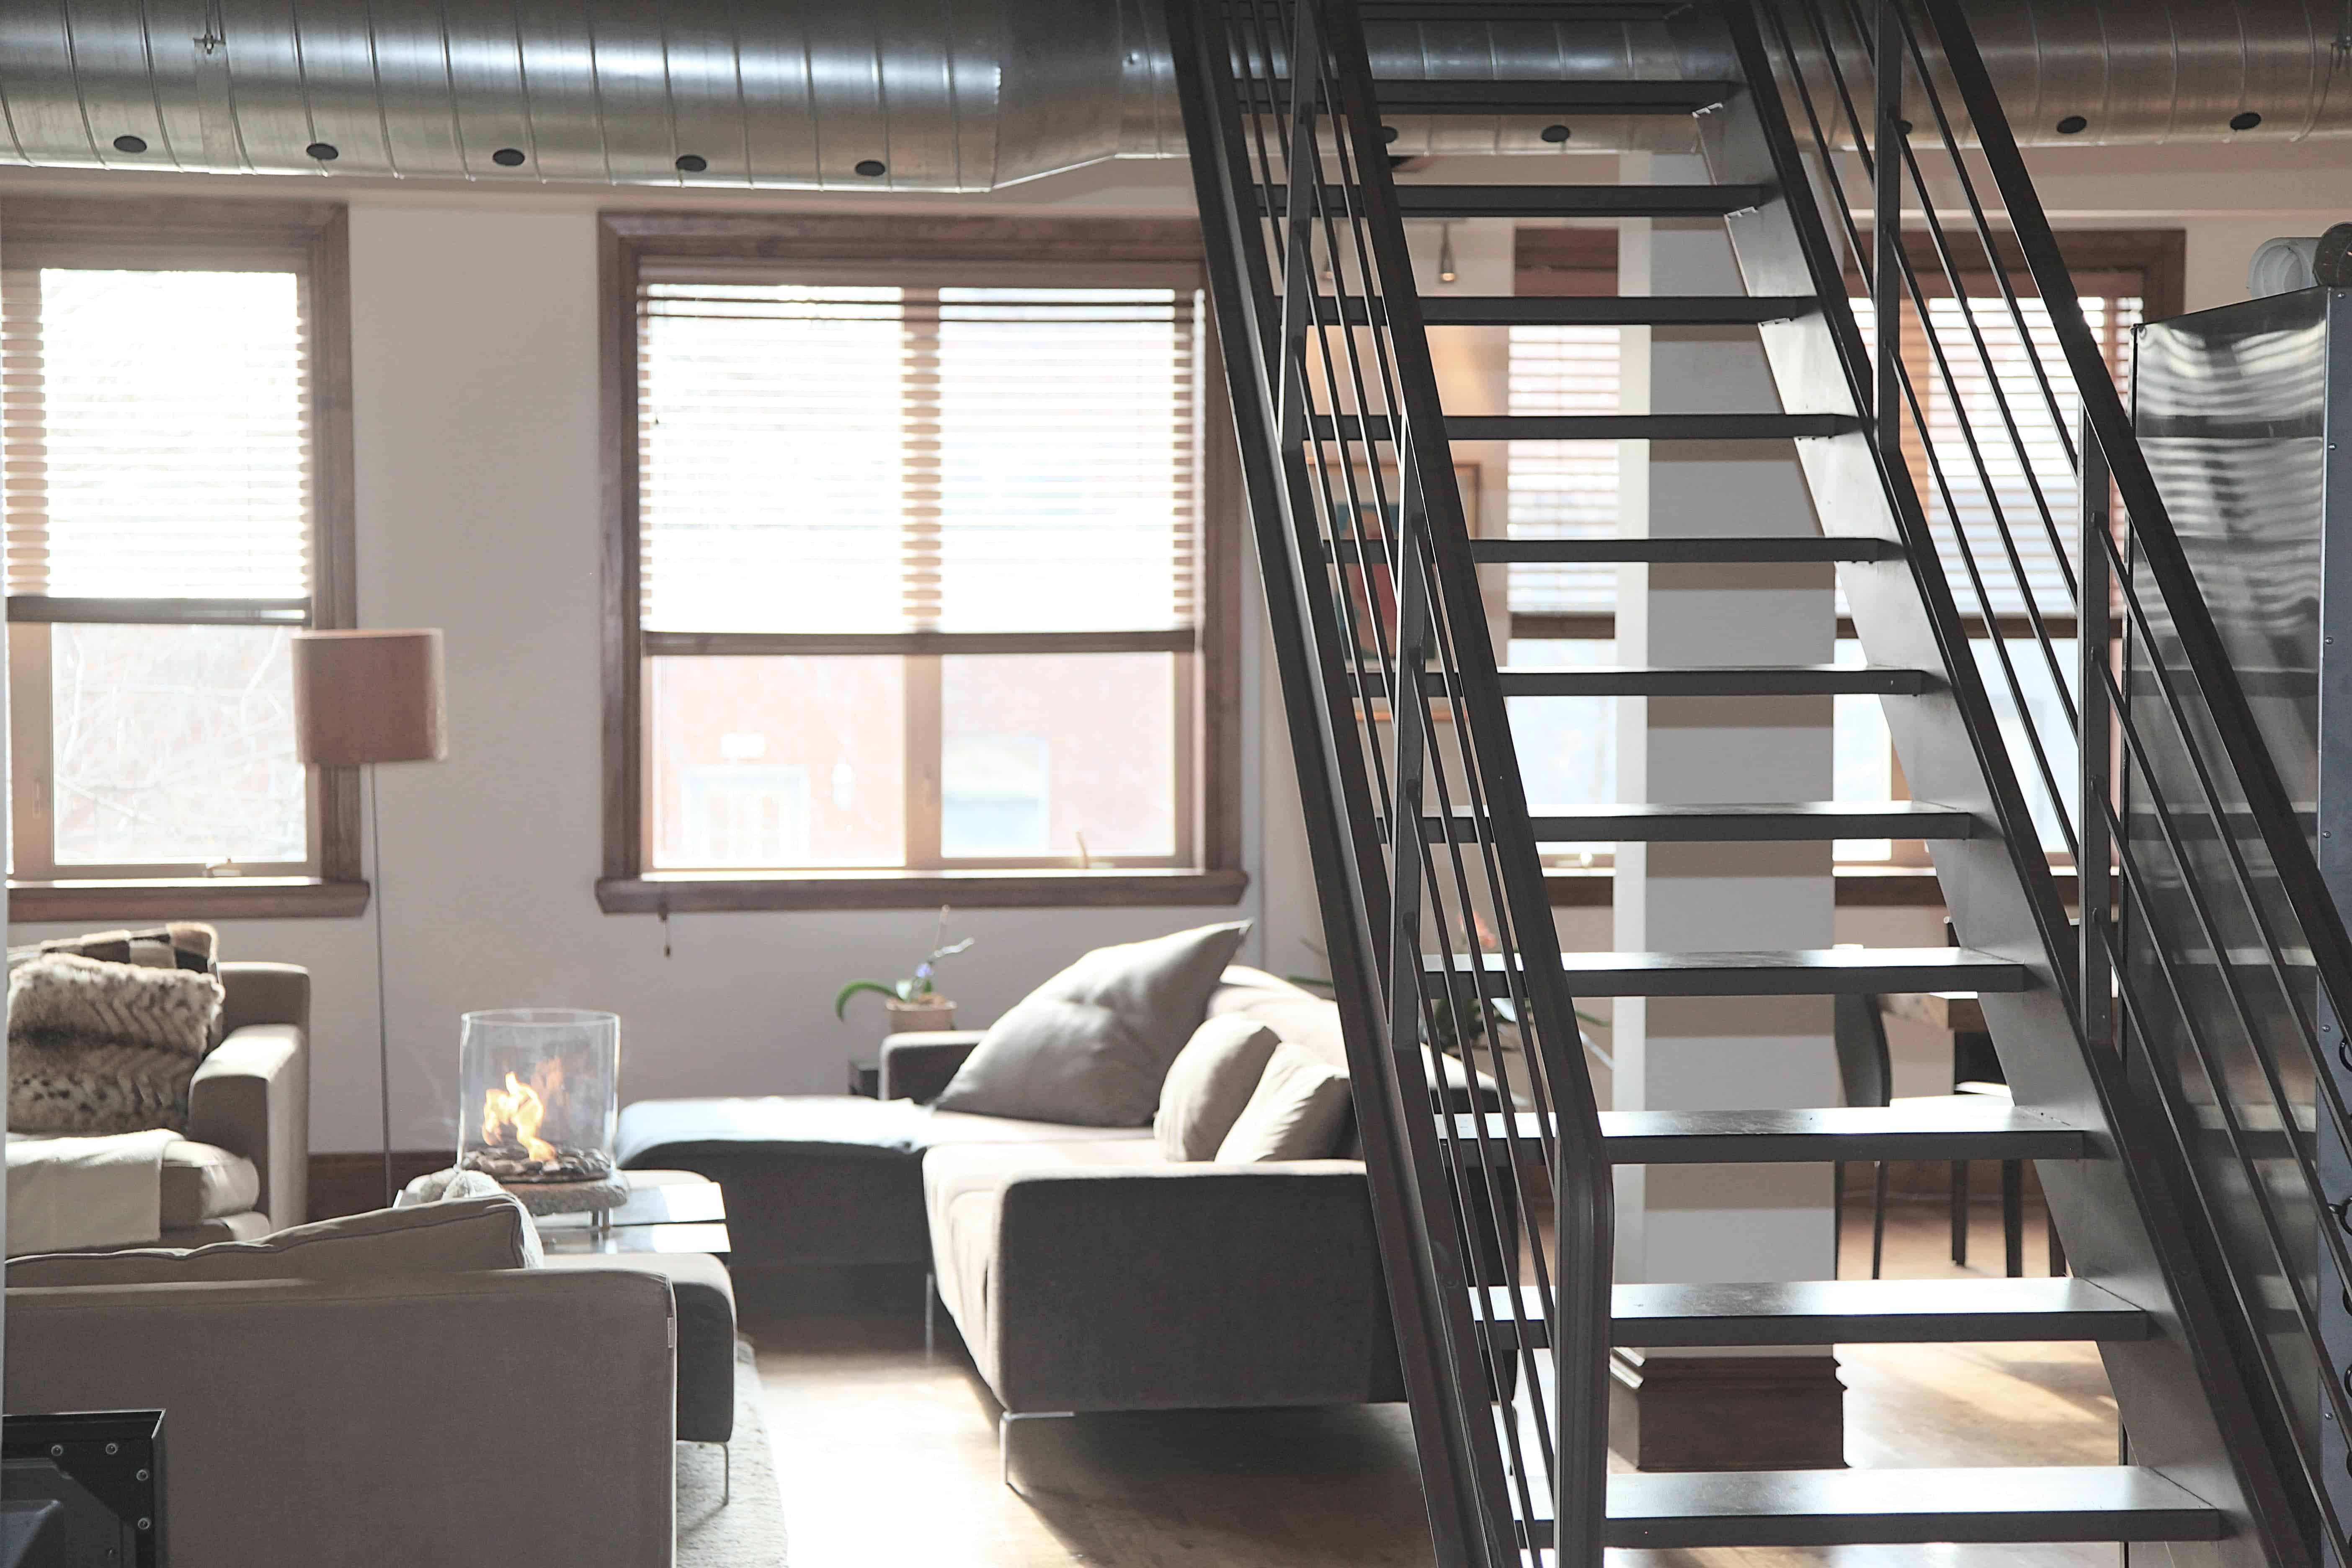 Airbnb Renting an Apartment Example airbnb arbitrage What Is Rental Arbitrage and How Can You Benefit with Airbnb? apartment airbnb